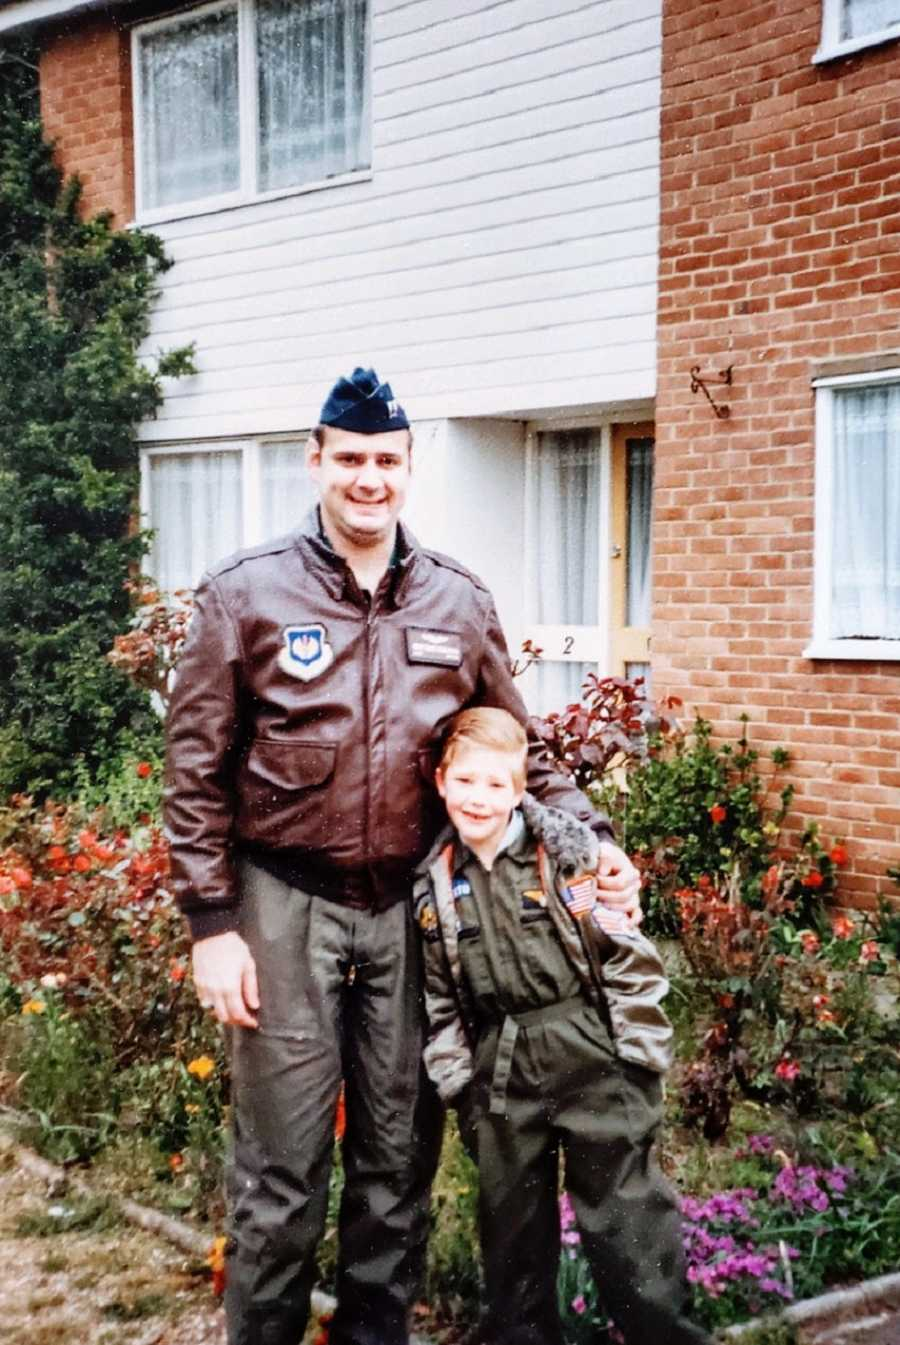 A man in a military uniform stands with a young boy outside